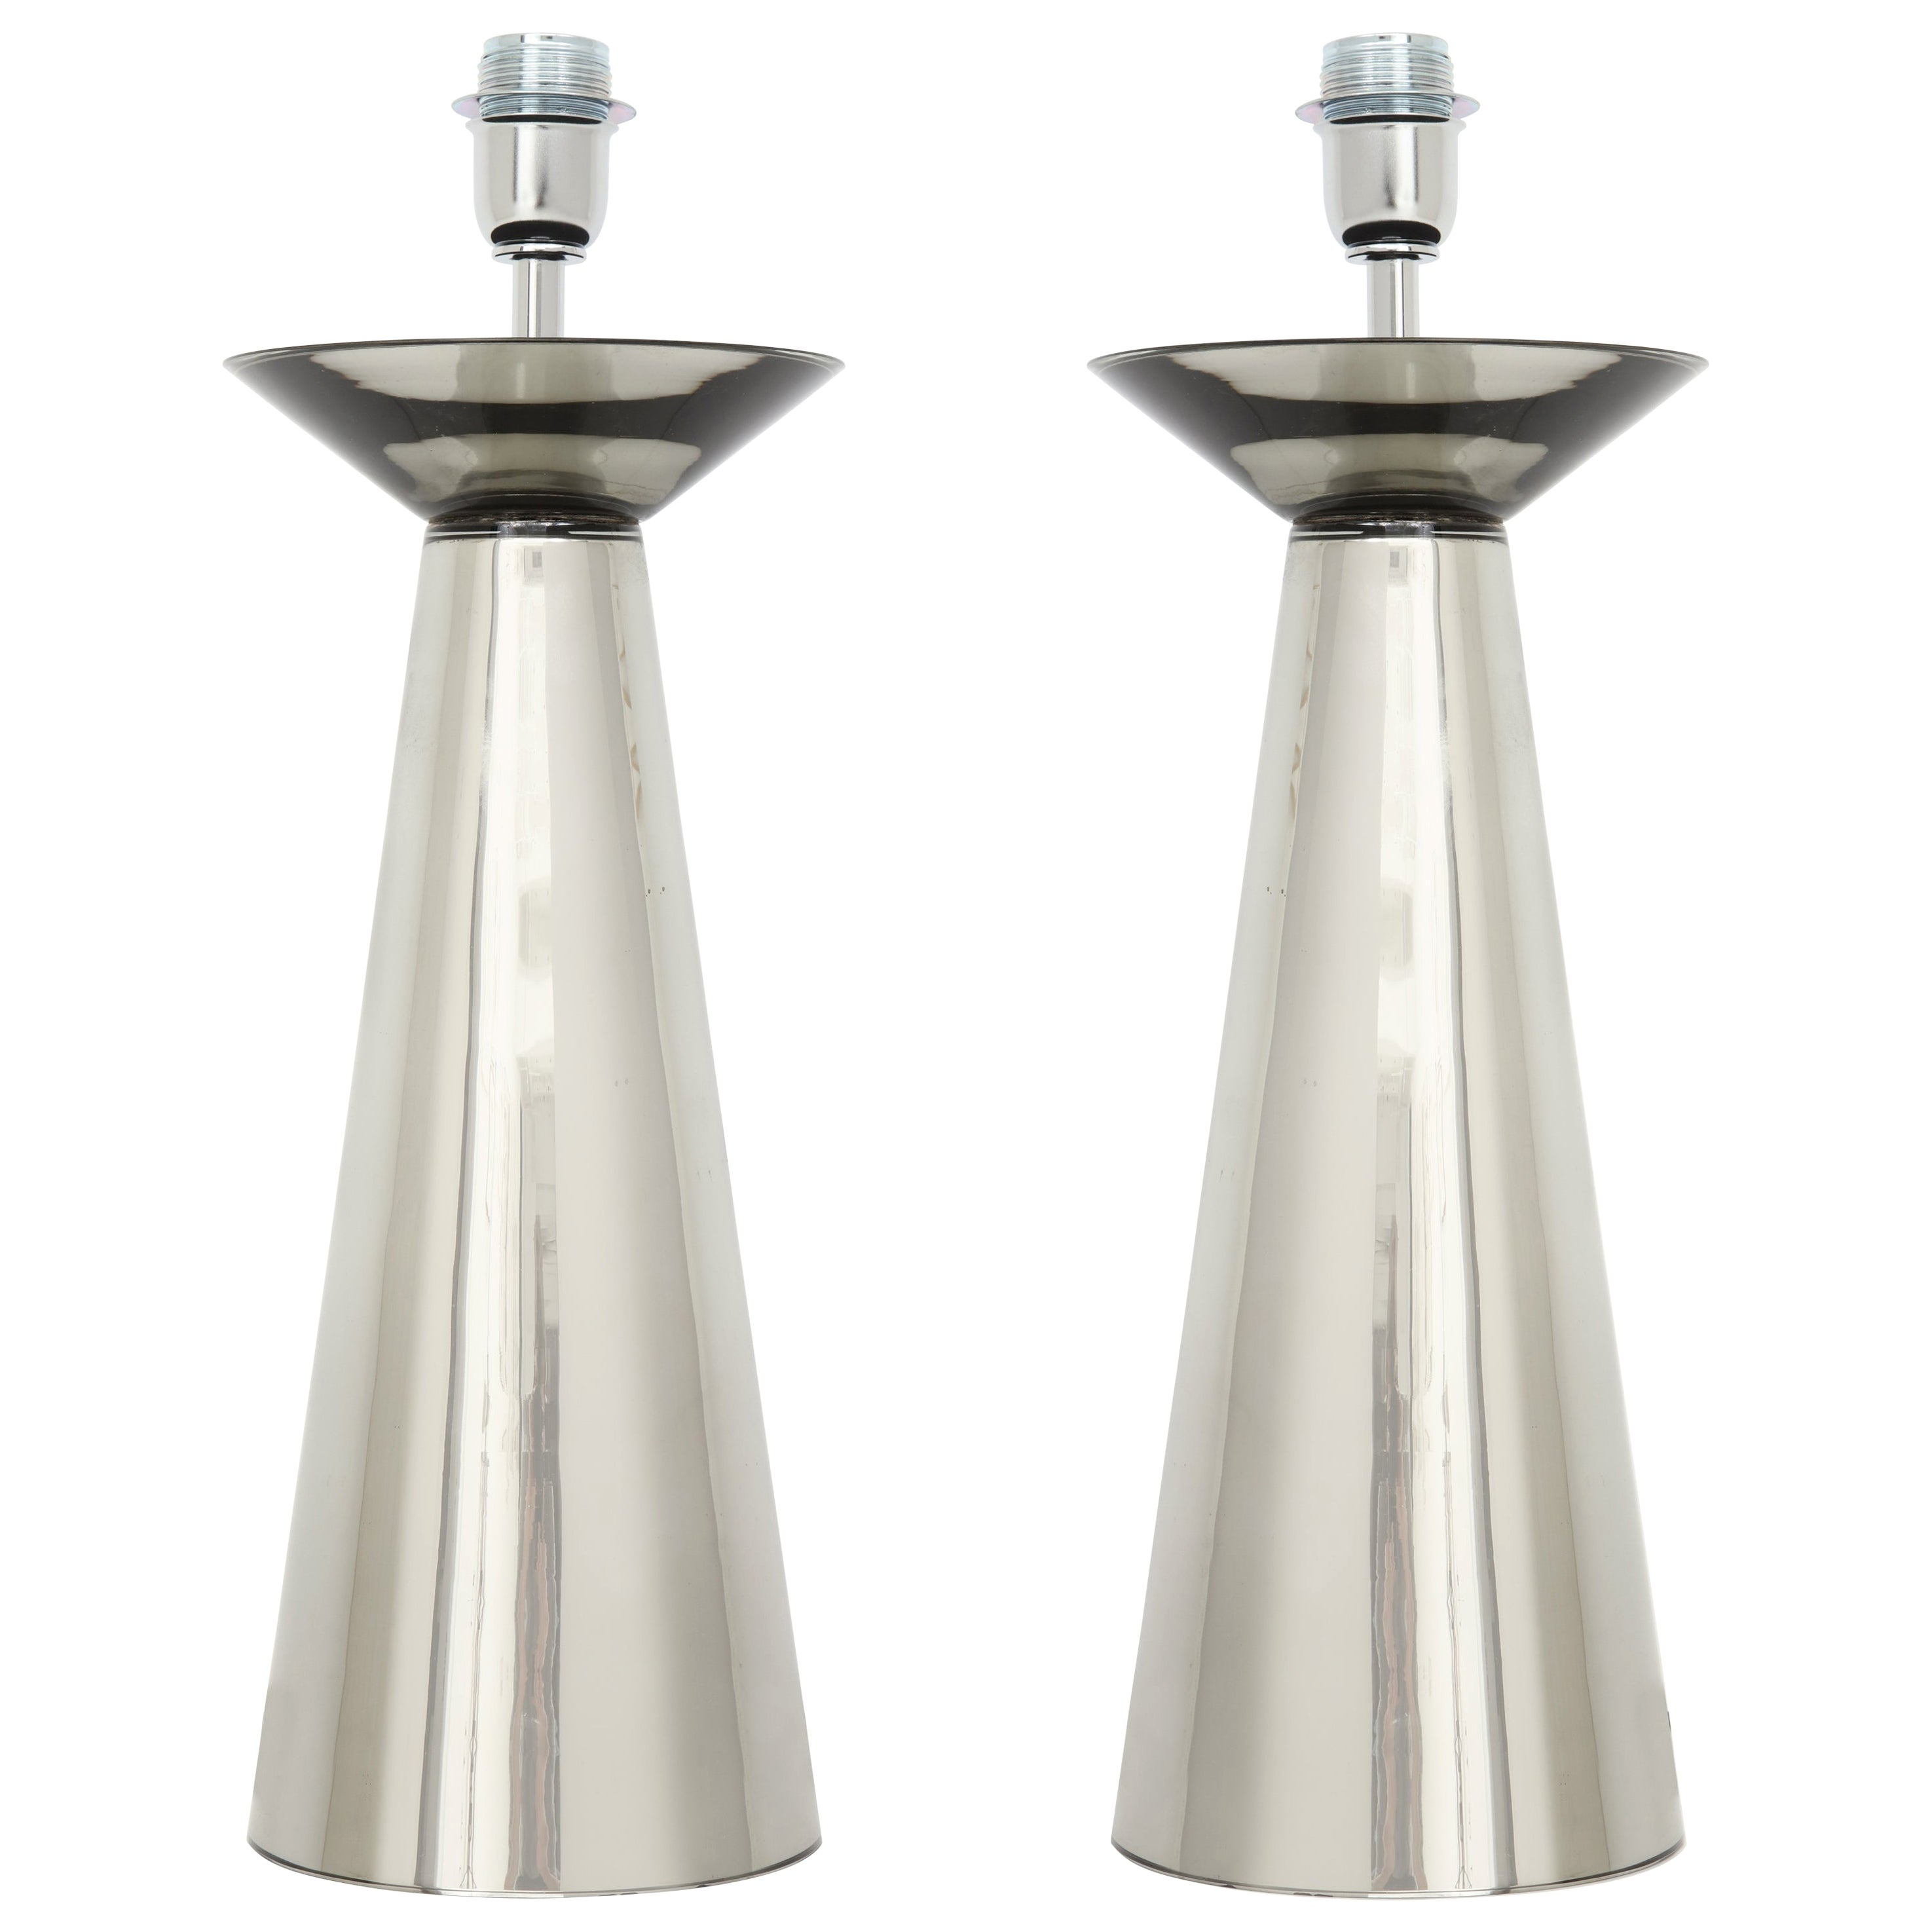 Pair of Modernist Silver Mercury Murano Glass Lamps, Italy, Signed